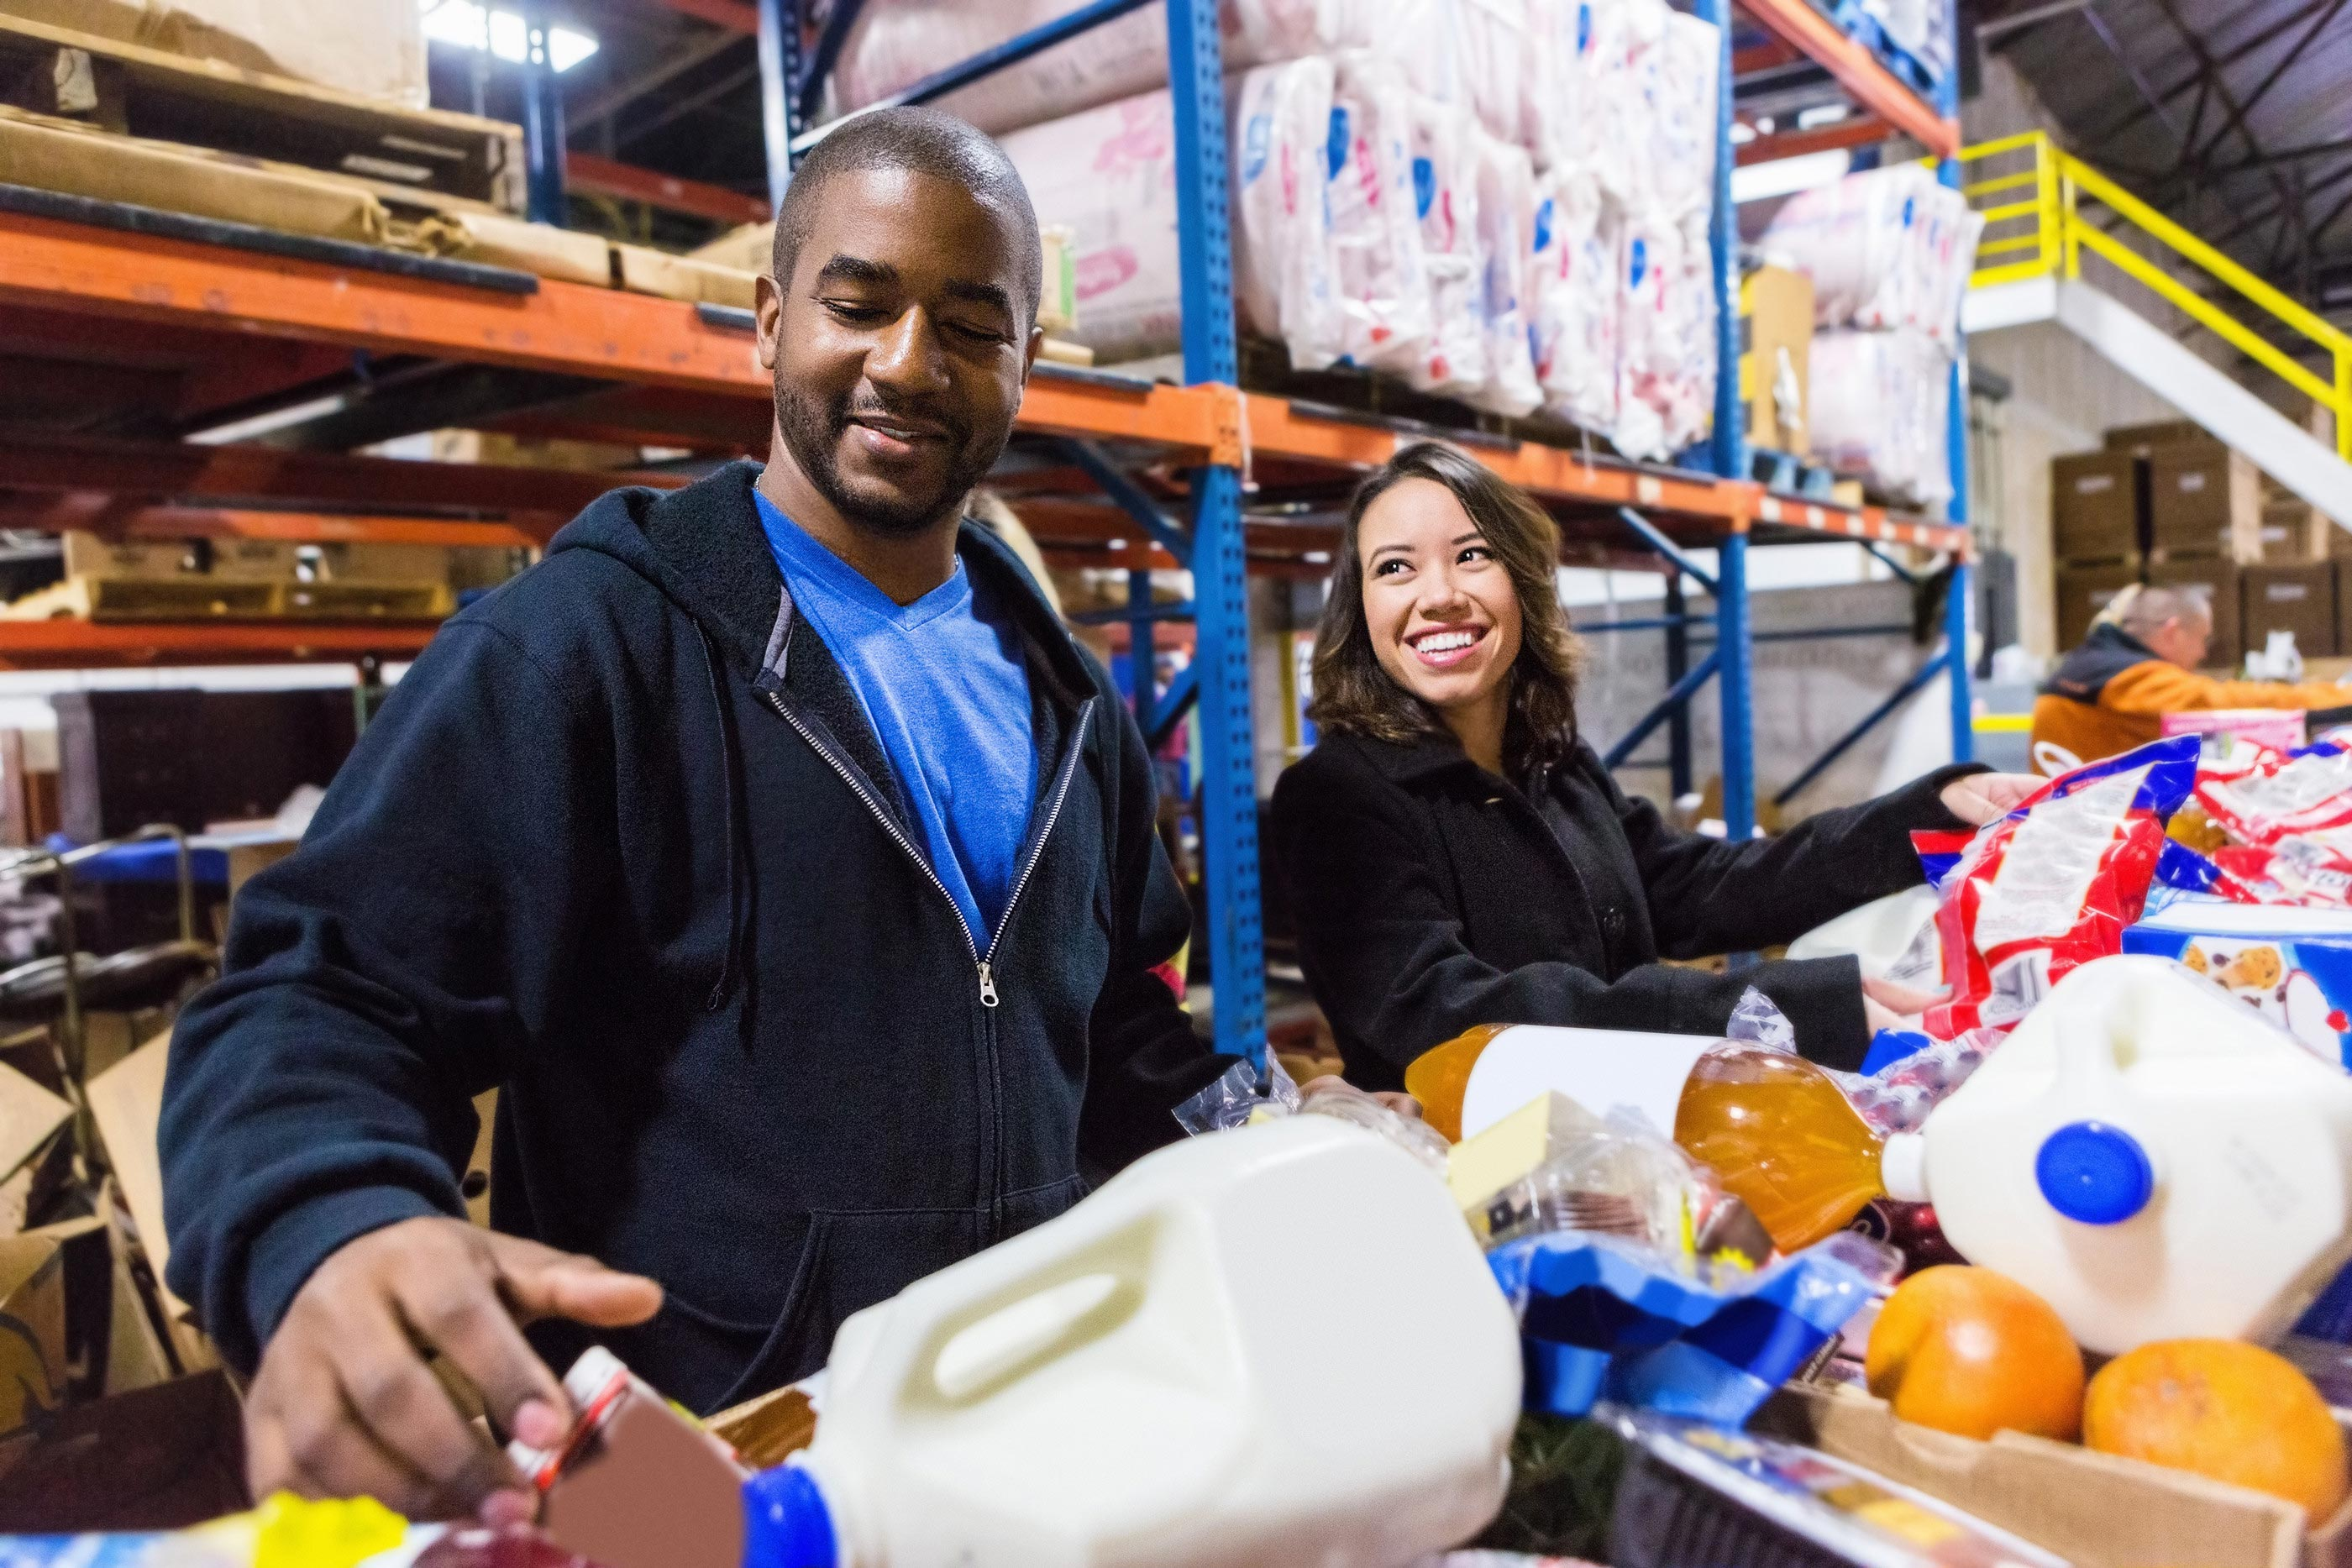 Two volunteers sorting food items